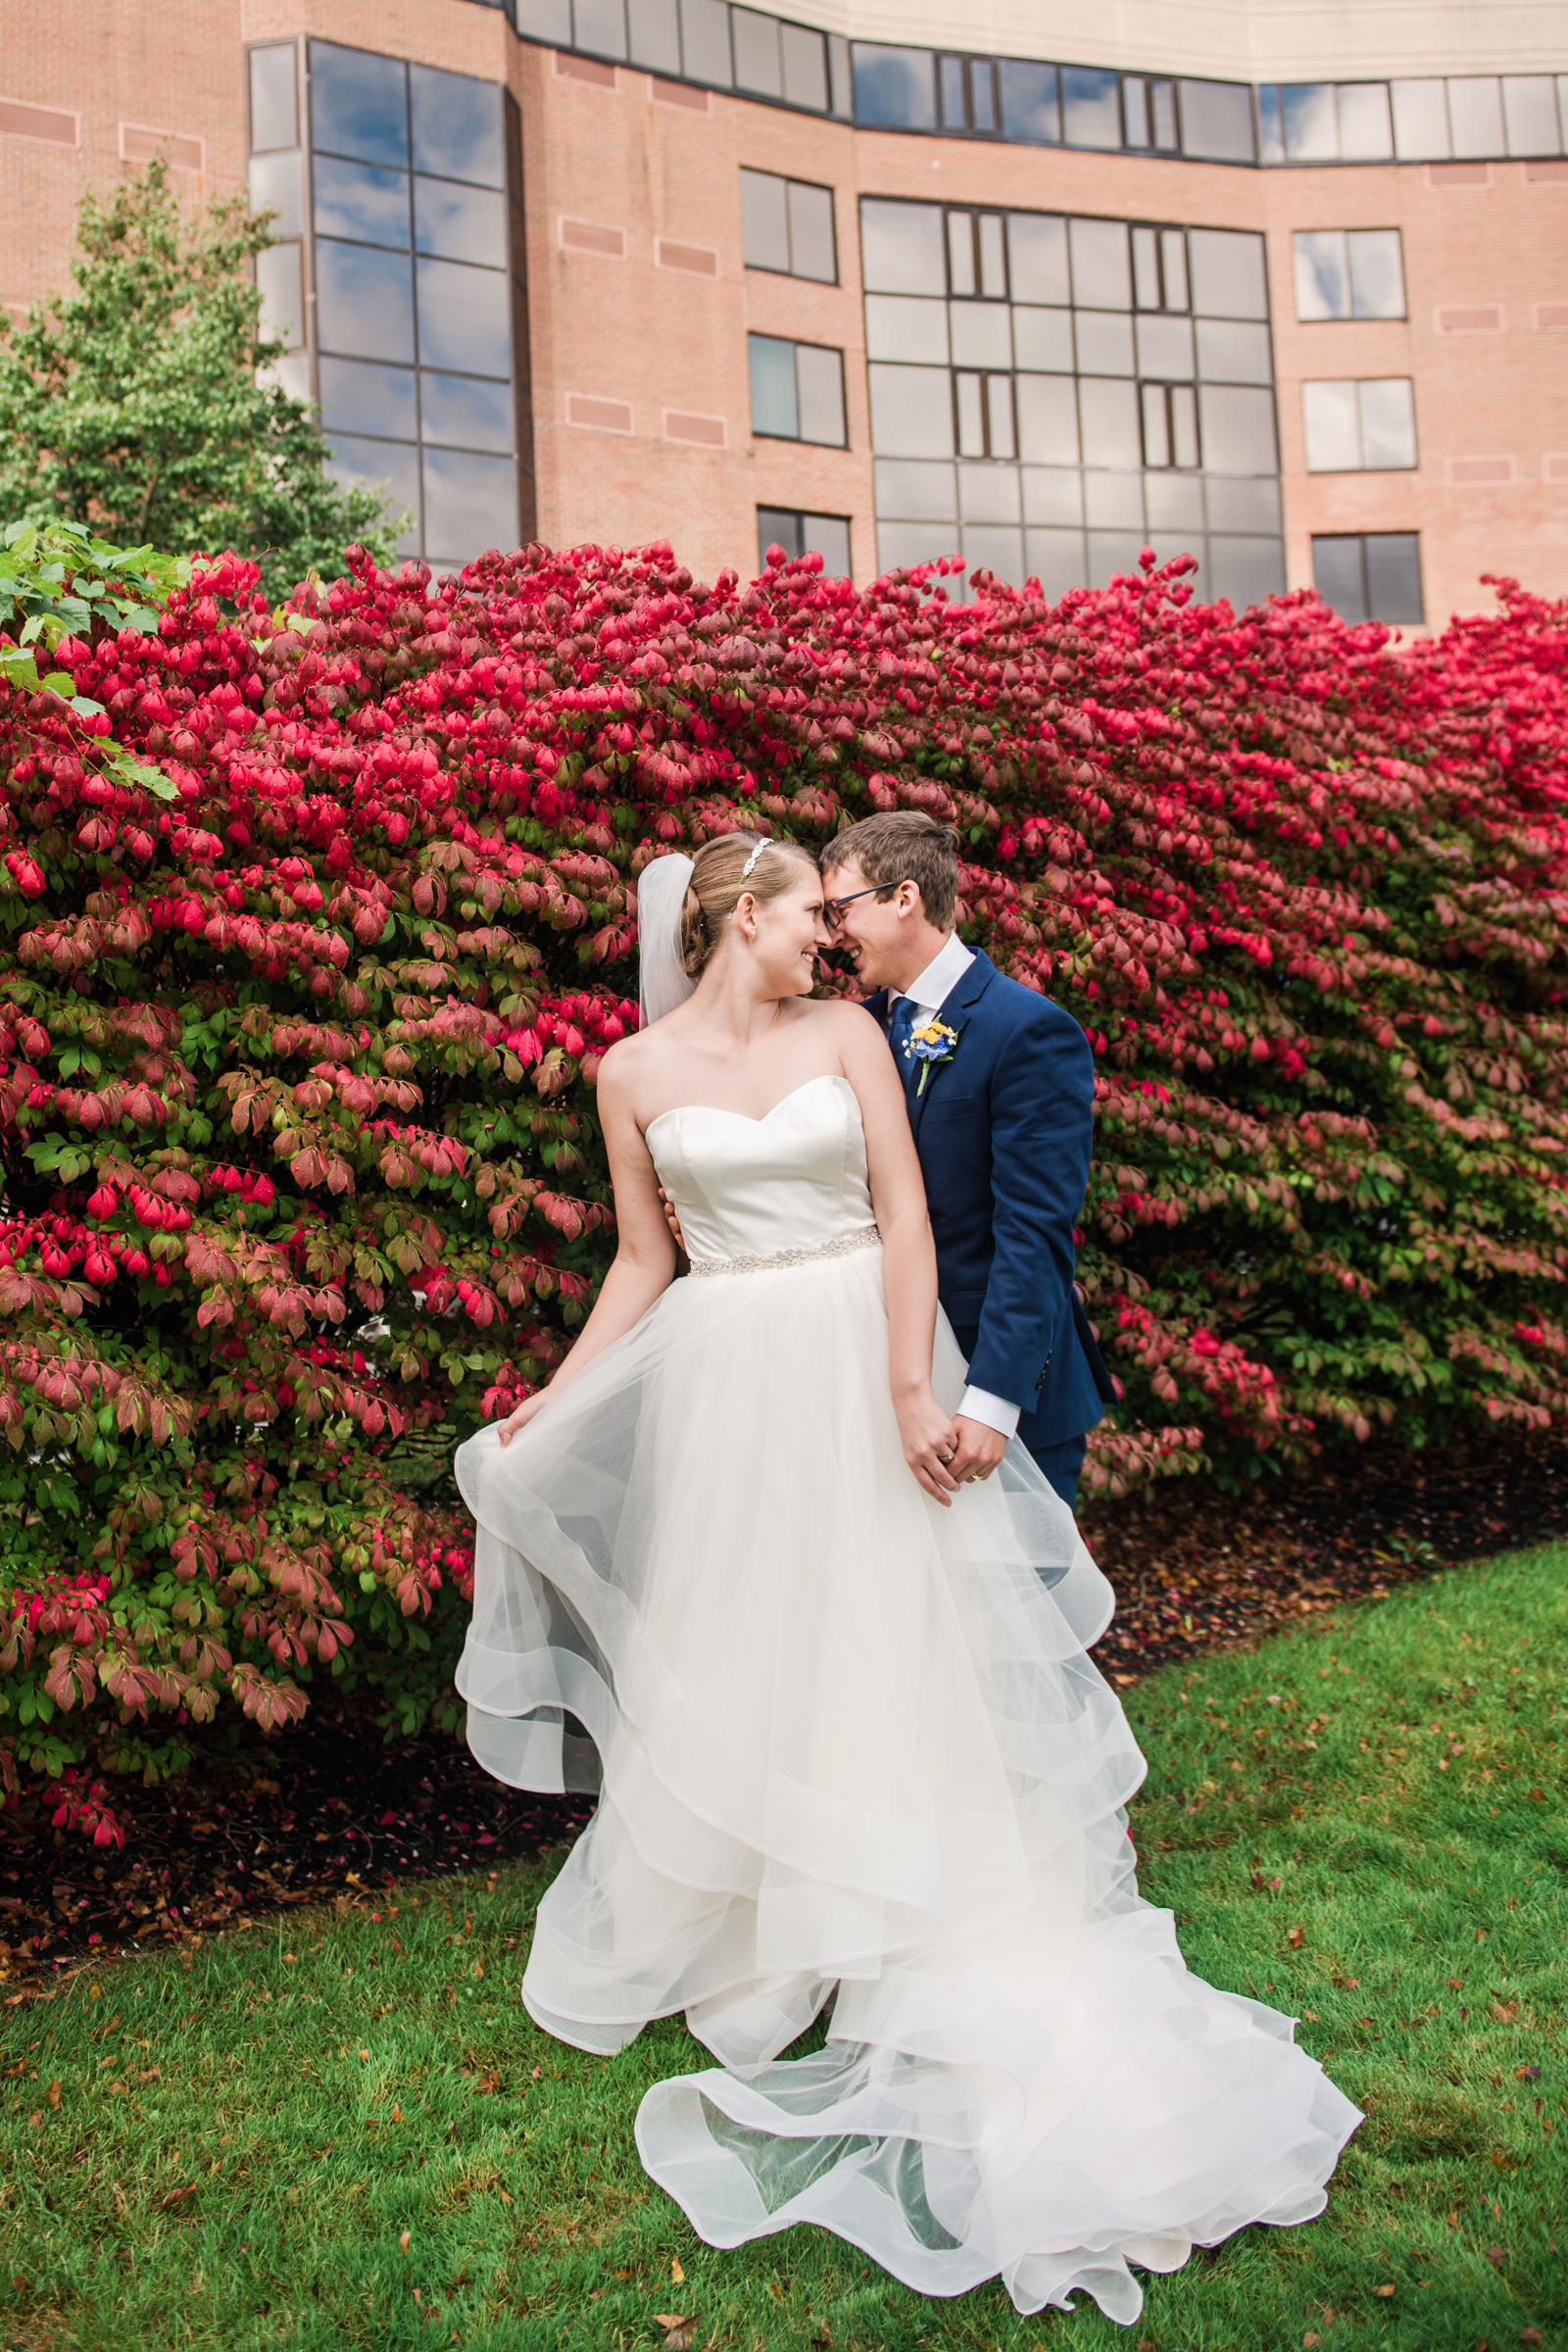 JILL_STUDIO_Wedding_JILL_STUDIO_Rochester_NY_Photographer_27-DSC_2711.jpg